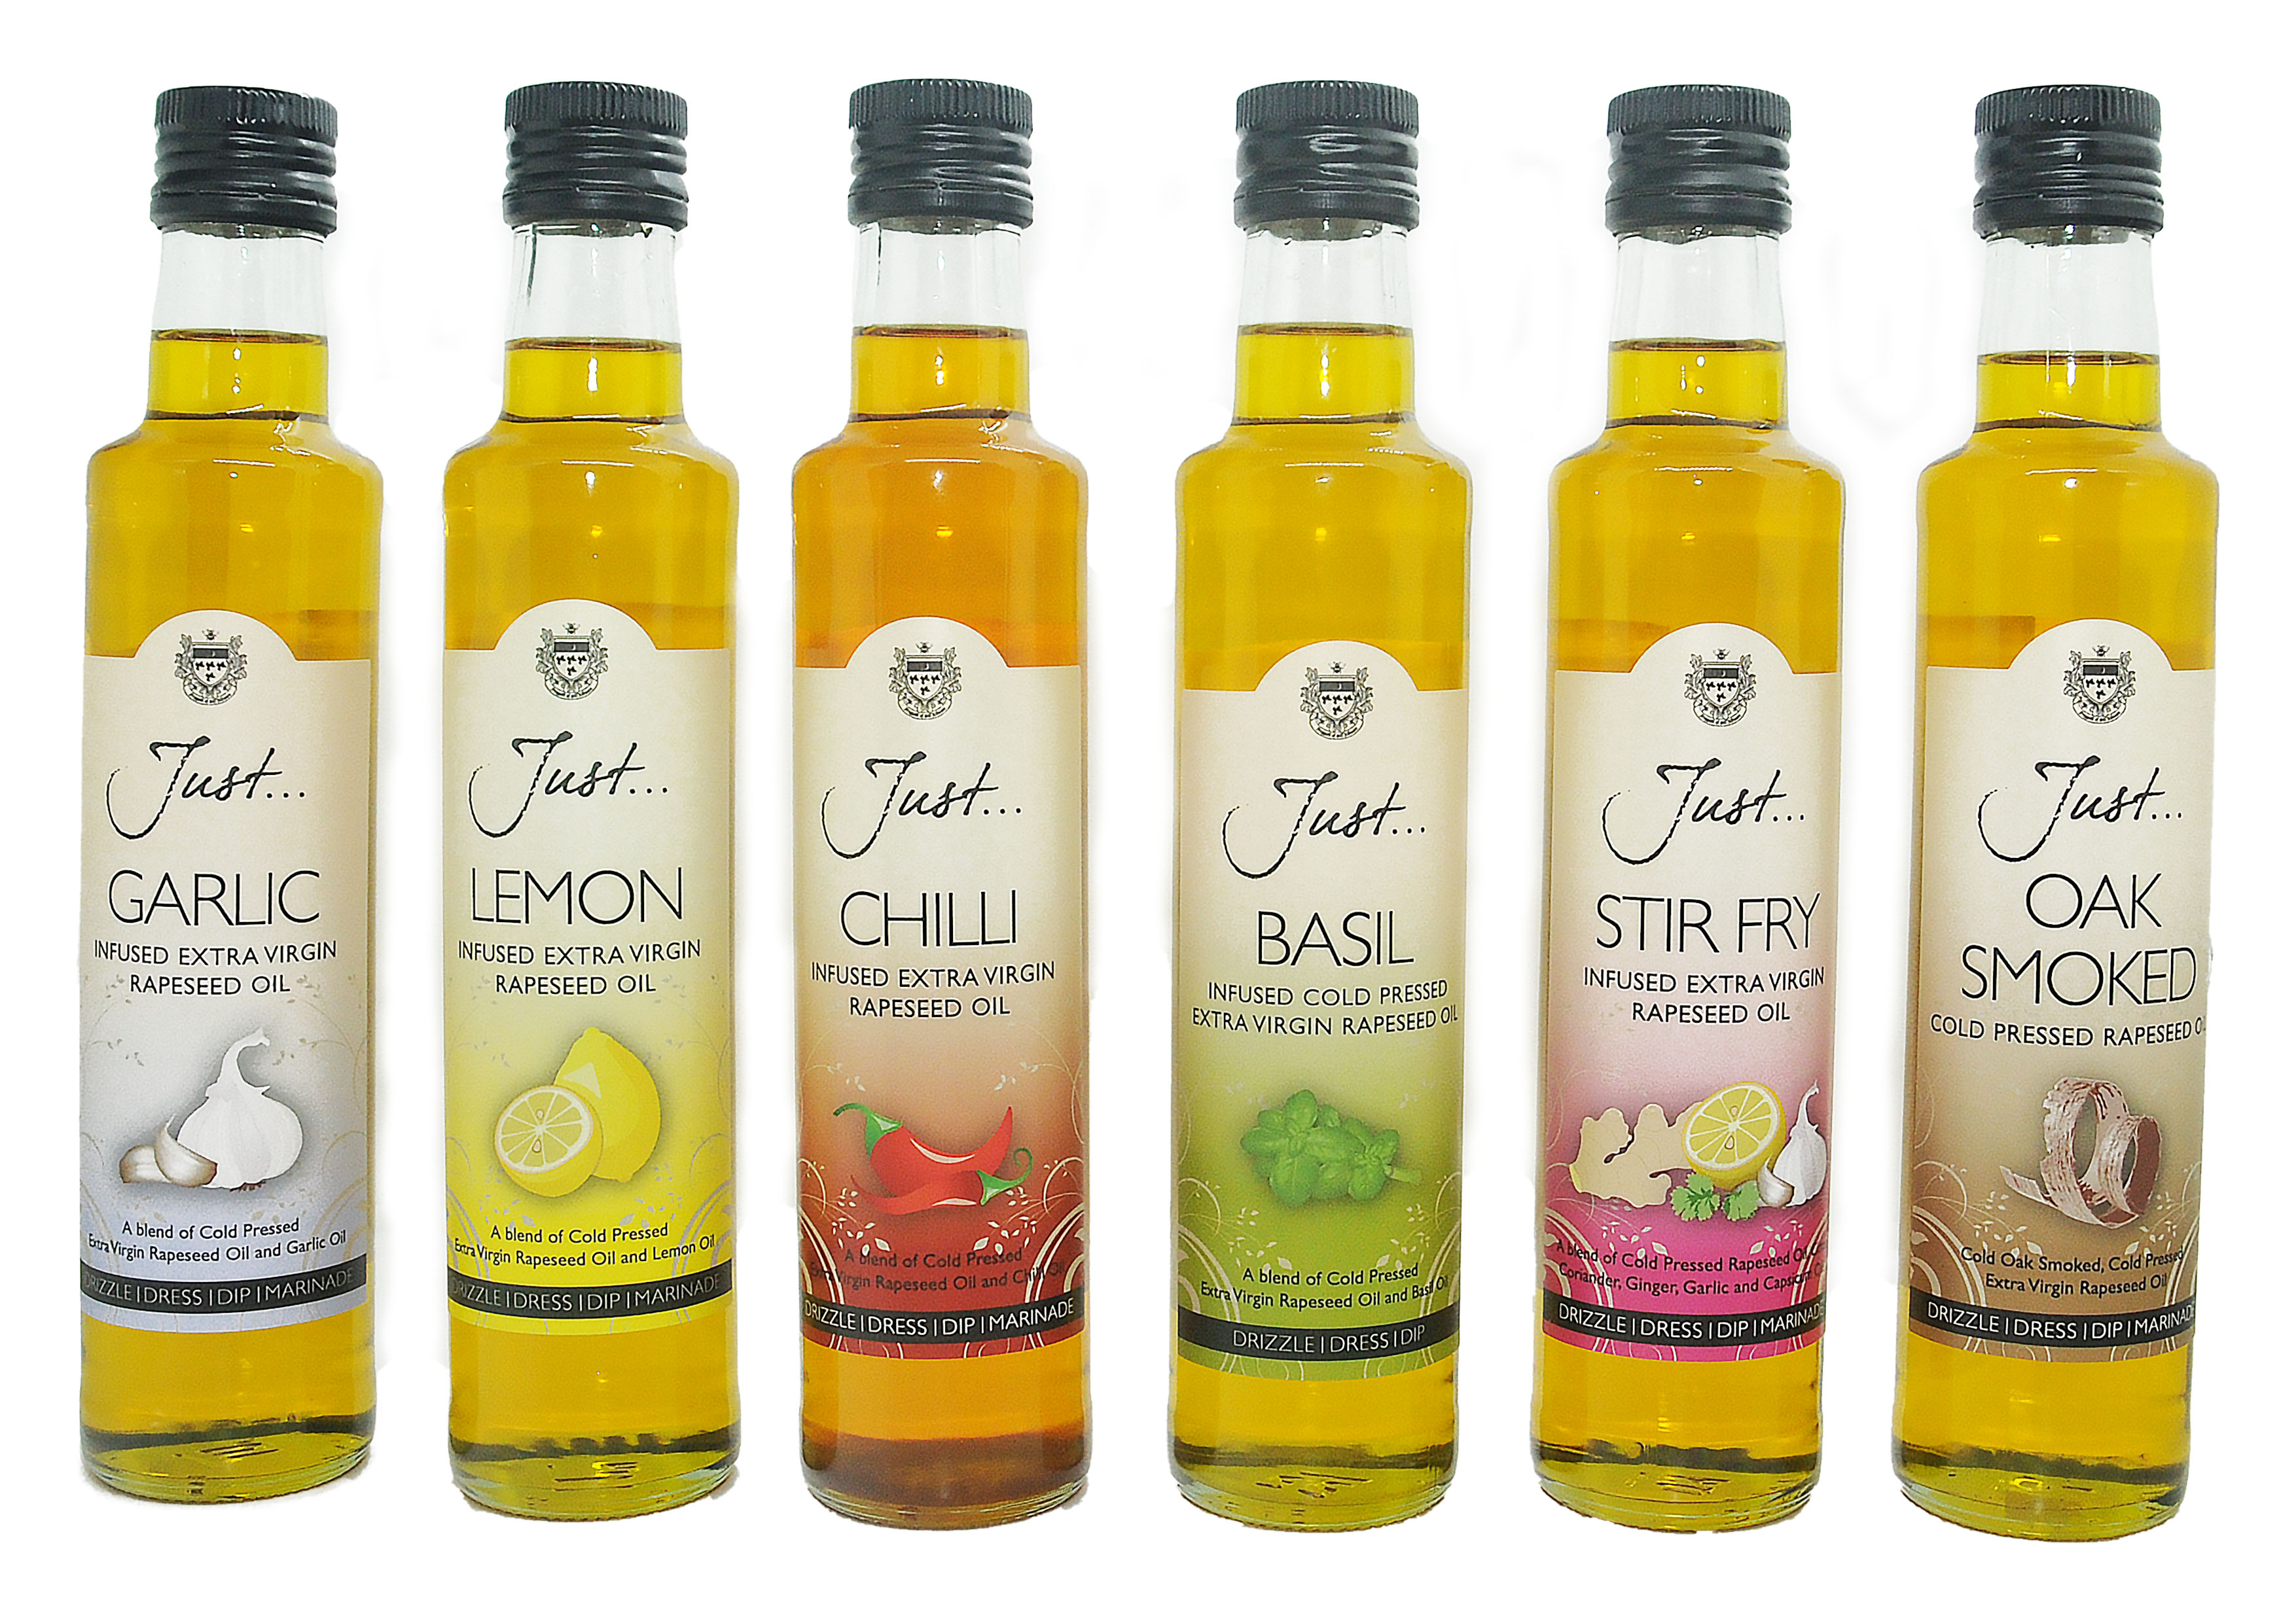 Just Oil Classic Mixed Box - Garlic, Lemon, Chilli, Basil, Stir Fry and Oak Smoked Infused Cold Pressed Rapeseed Oil 250 ml (Pack of 6)